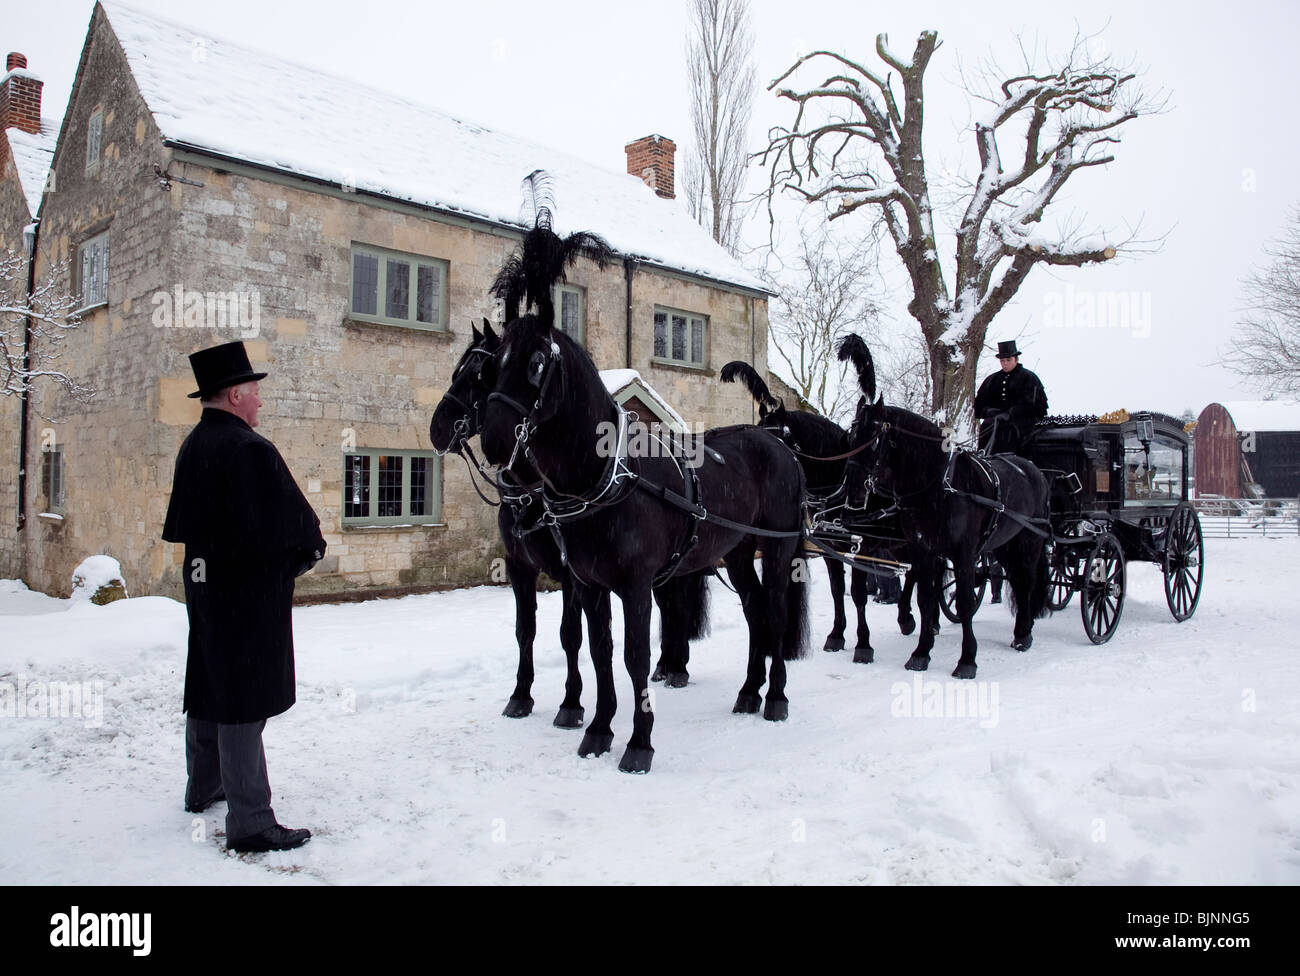 Traditional old fashioned Horse drawn funeral carriage in snow with four horses ready to leave for church service - Stock Image